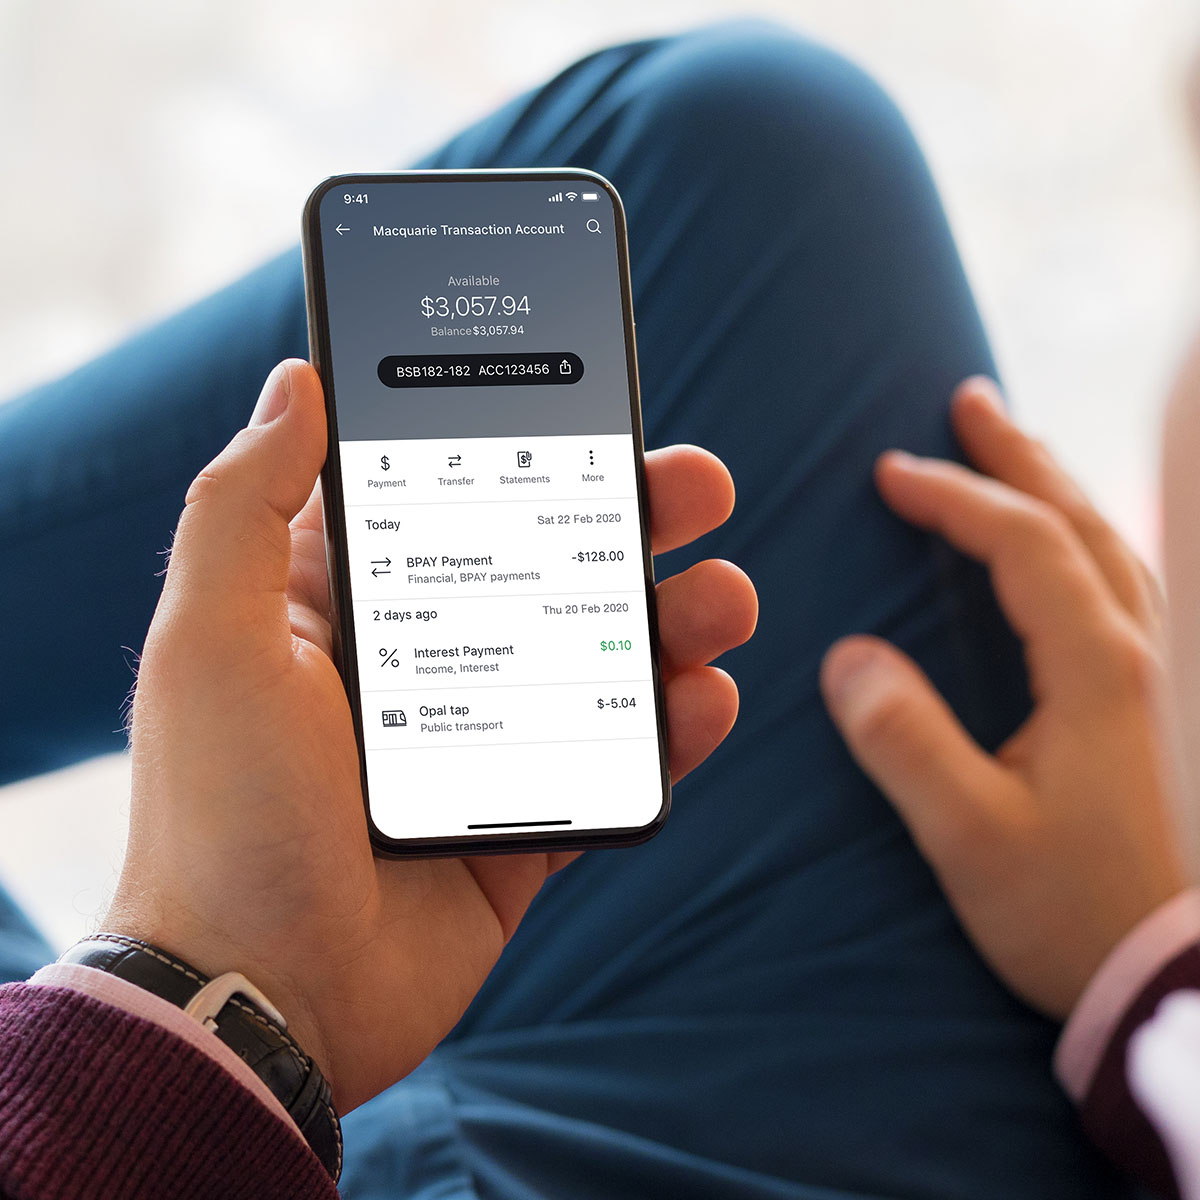 A man lounging back and using his smart phone with the Macquarie bank app open on a transactions screen